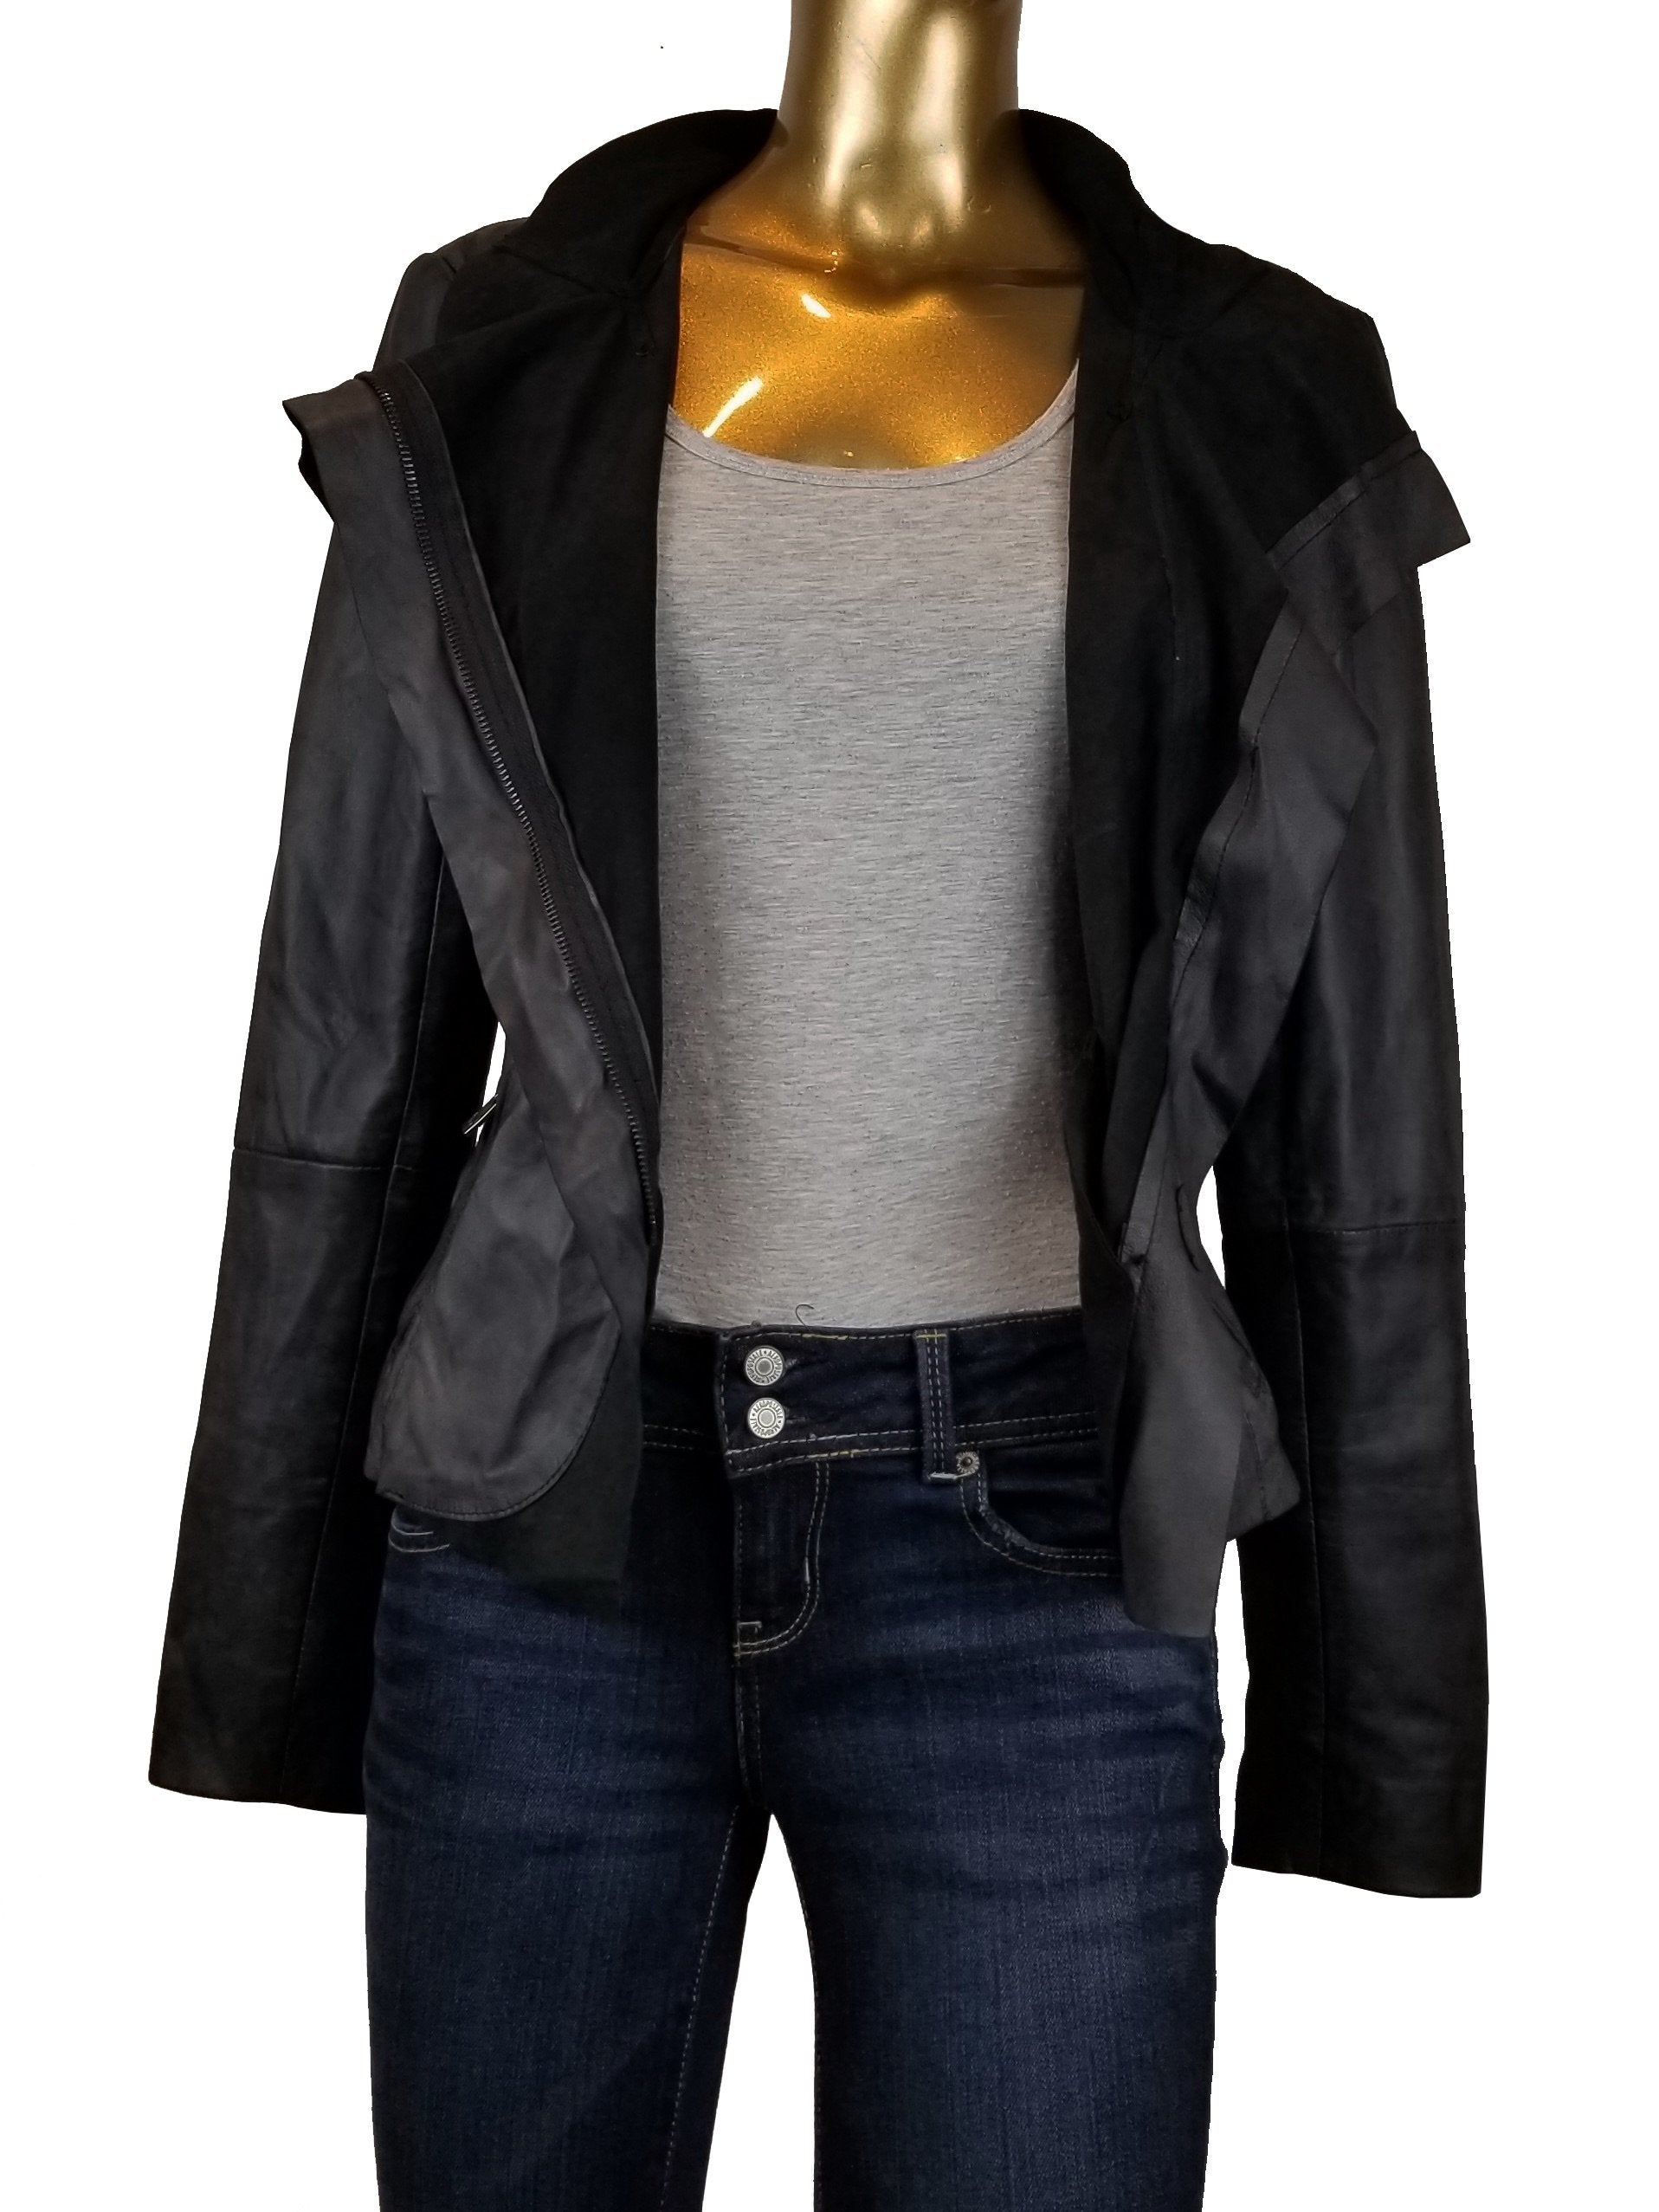 Bod & Christensen Women's Leather Moto Jacket, Soft leather that keeps you warm inside and shine outside , Black, 100% Leather shell, jacket, vintage women leather jacket, couture women black leather jacket, sleek zipper leather jacket$100-$199.99jacket, vintage women leather jacket, couture women black leather jacket, sleek zipper leather jacket